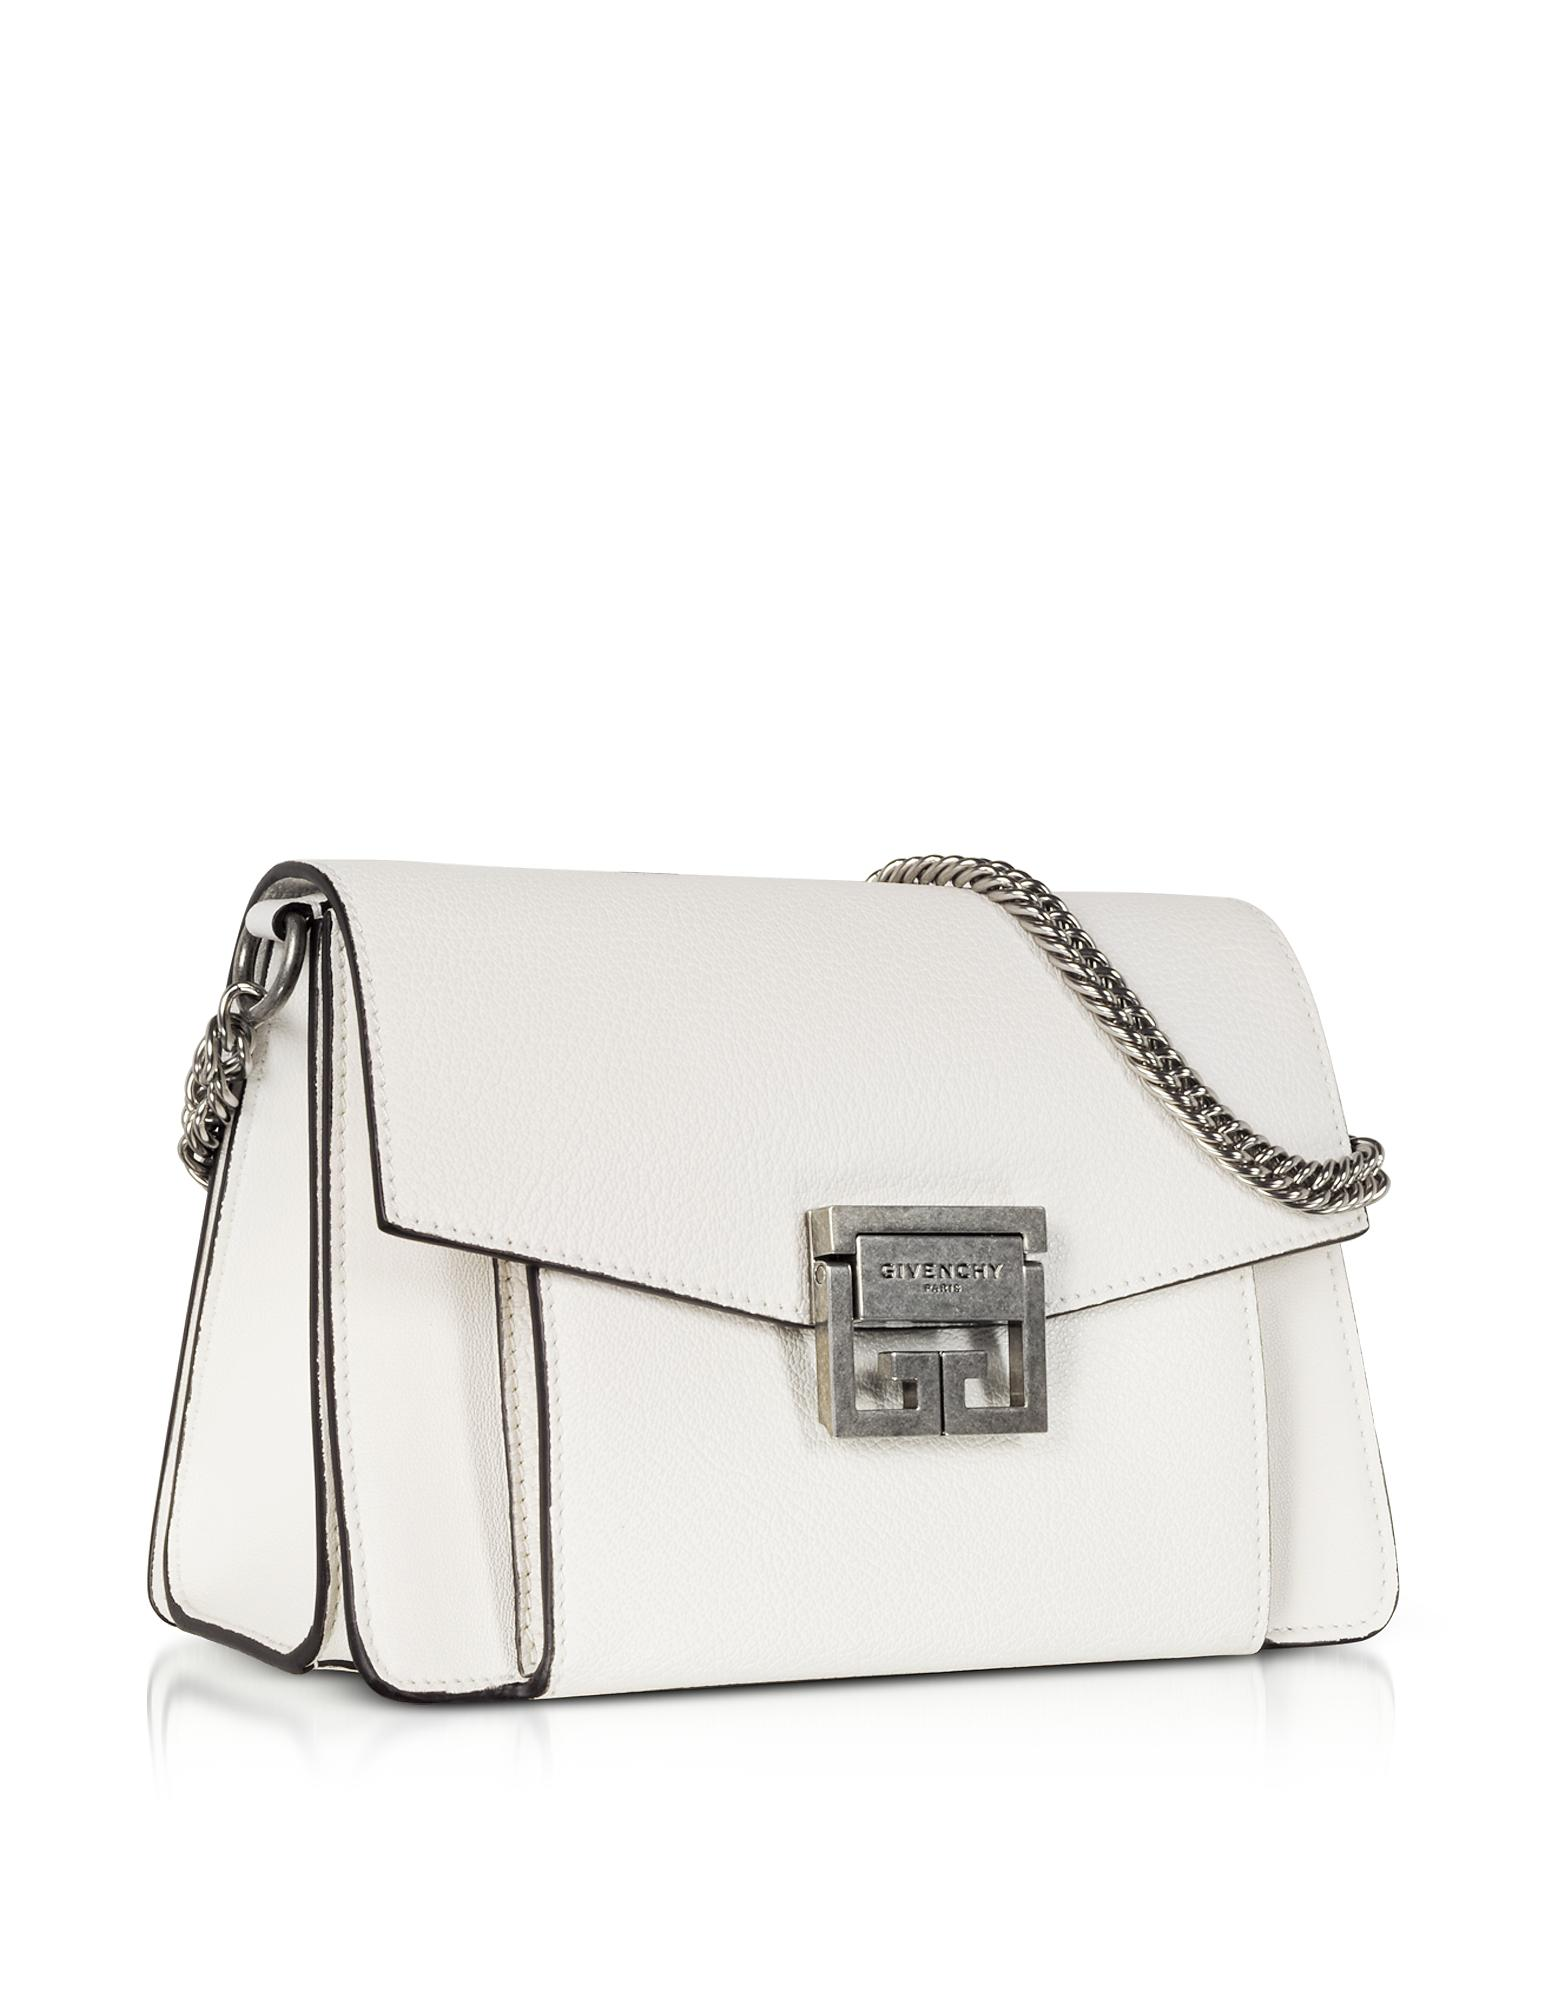 Givenchy Small Gv3 Leather Shoulder Bag in White - Lyst d1ce10abae083